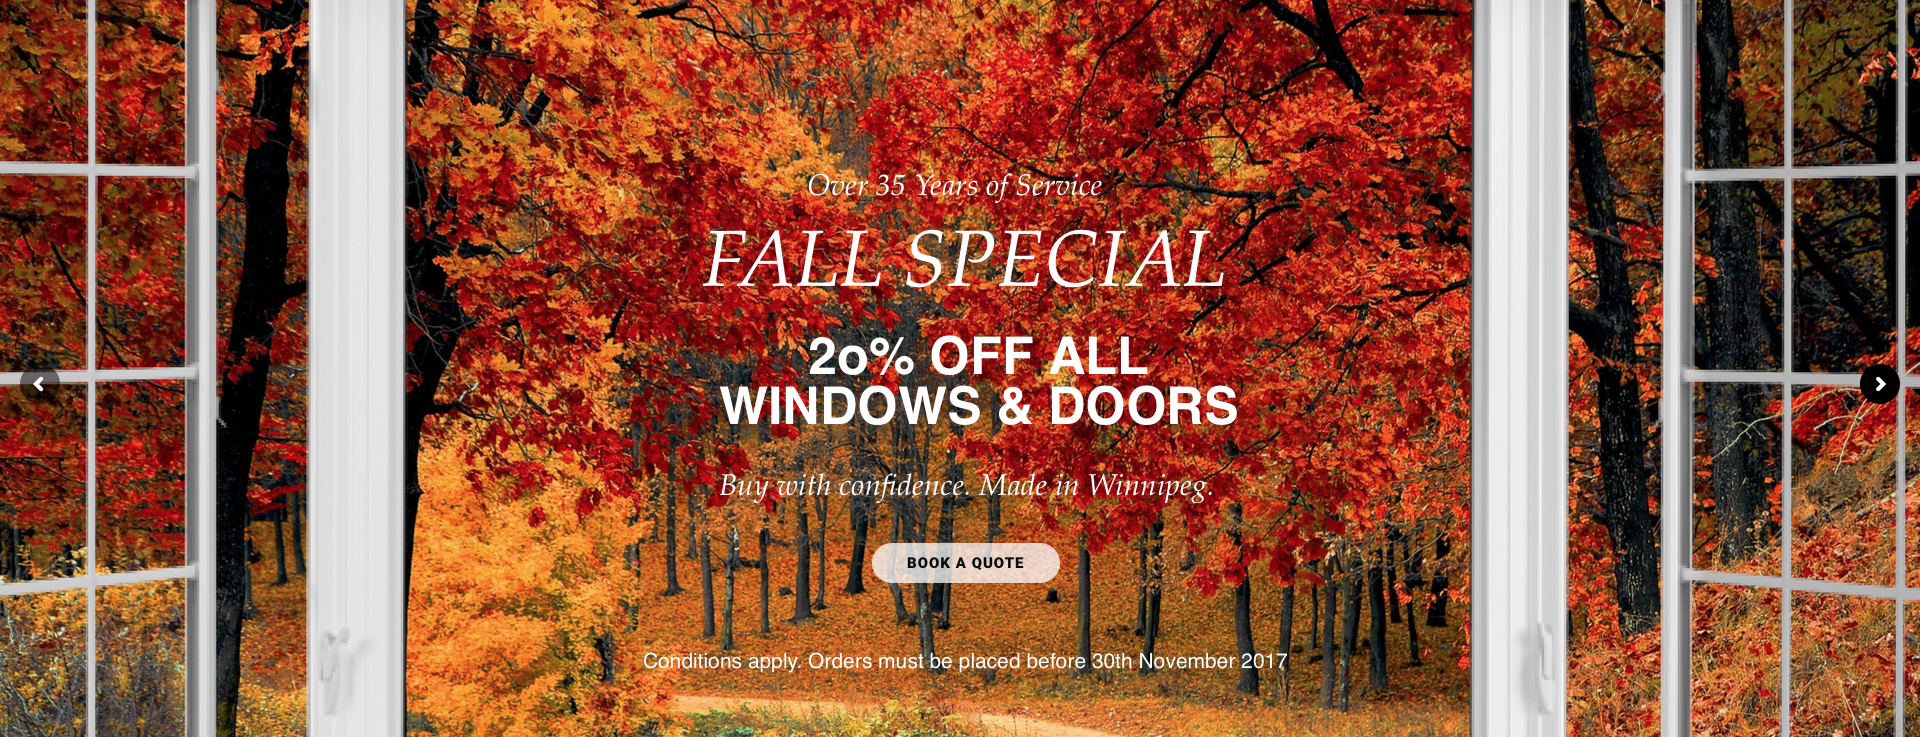 Fall Window & Door Special